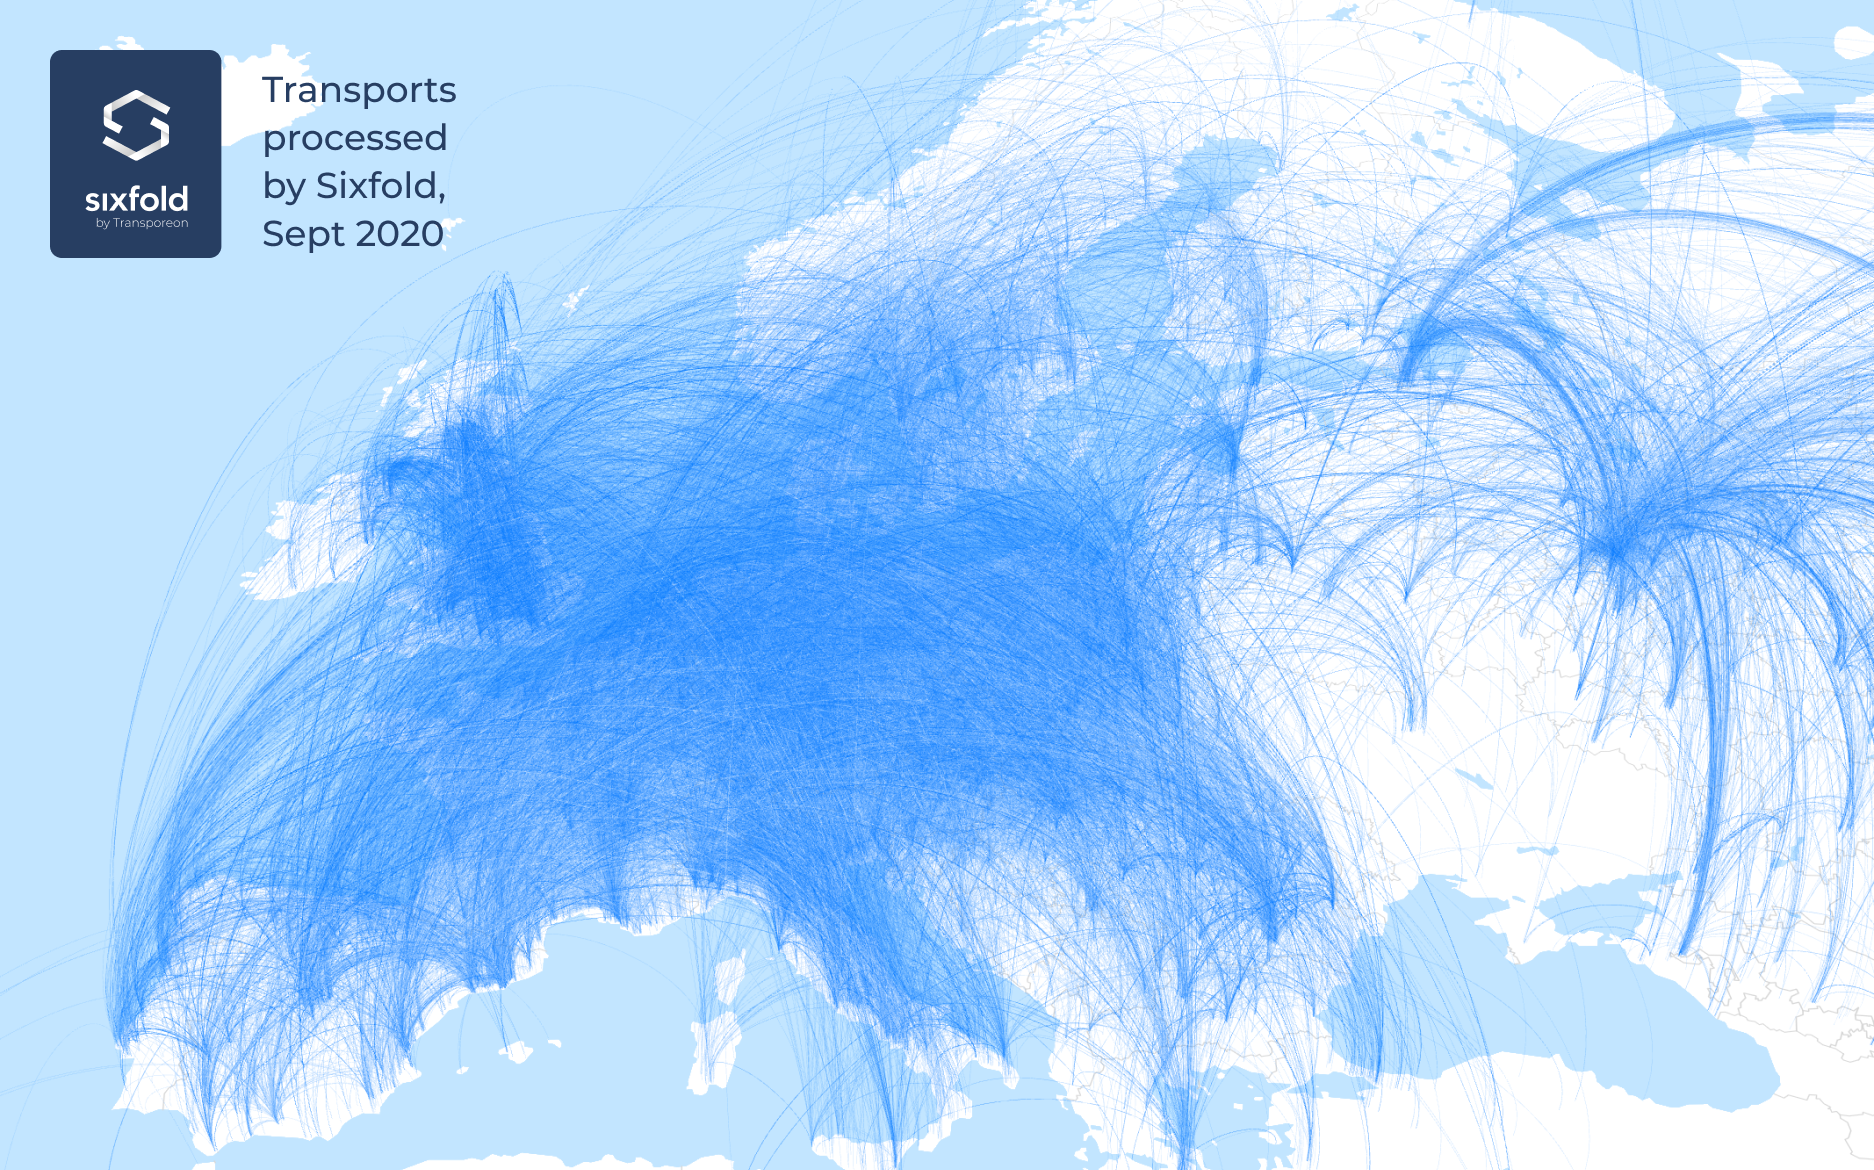 A map of transports processed by Sixfold in the month of September in 2020